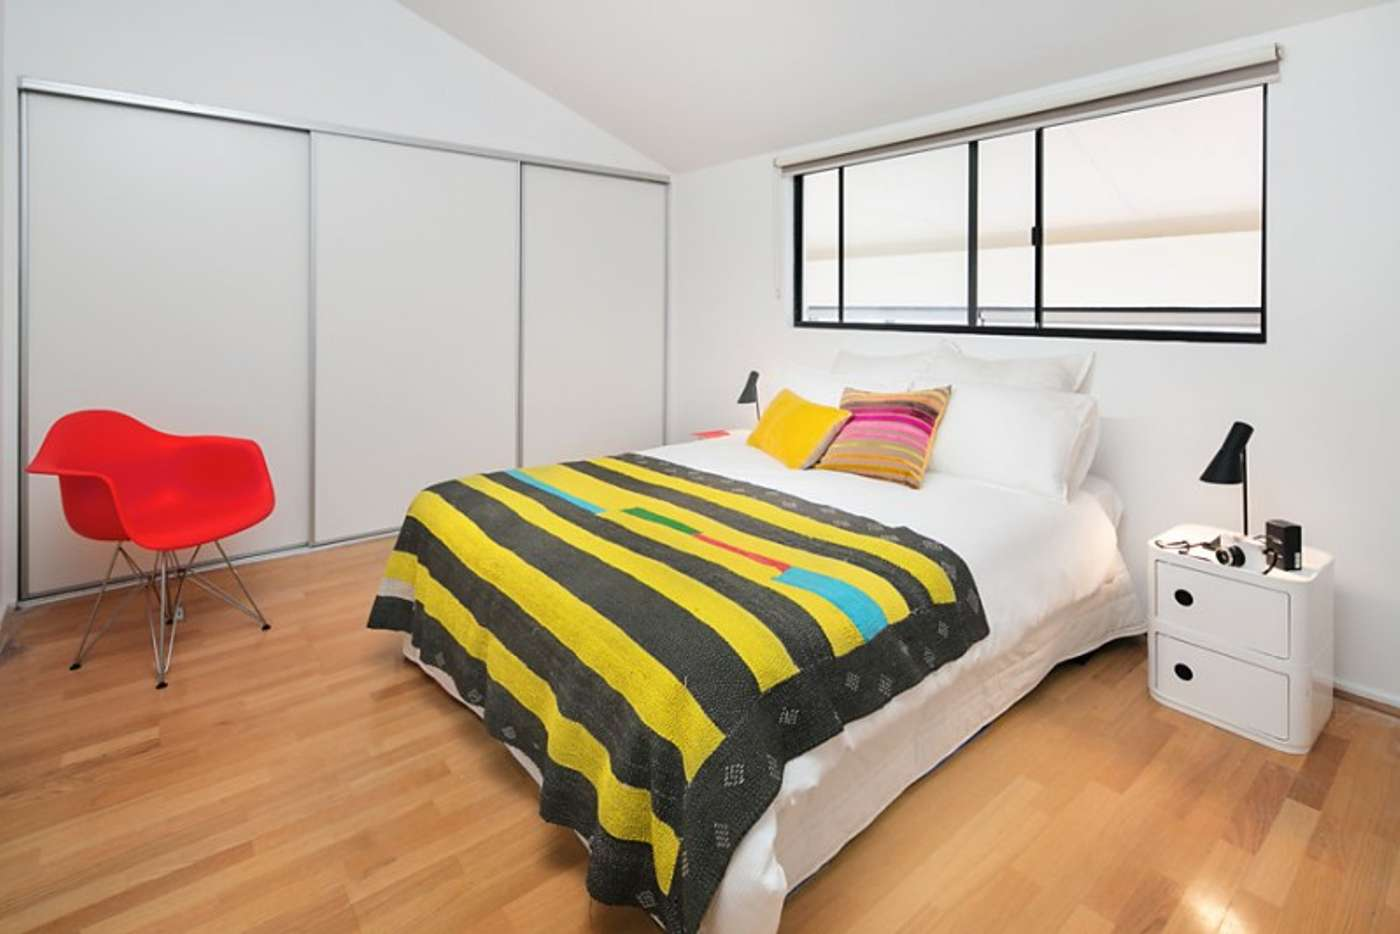 Sixth view of Homely apartment listing, 122/1-3 Dods St, Brunswick VIC 3056